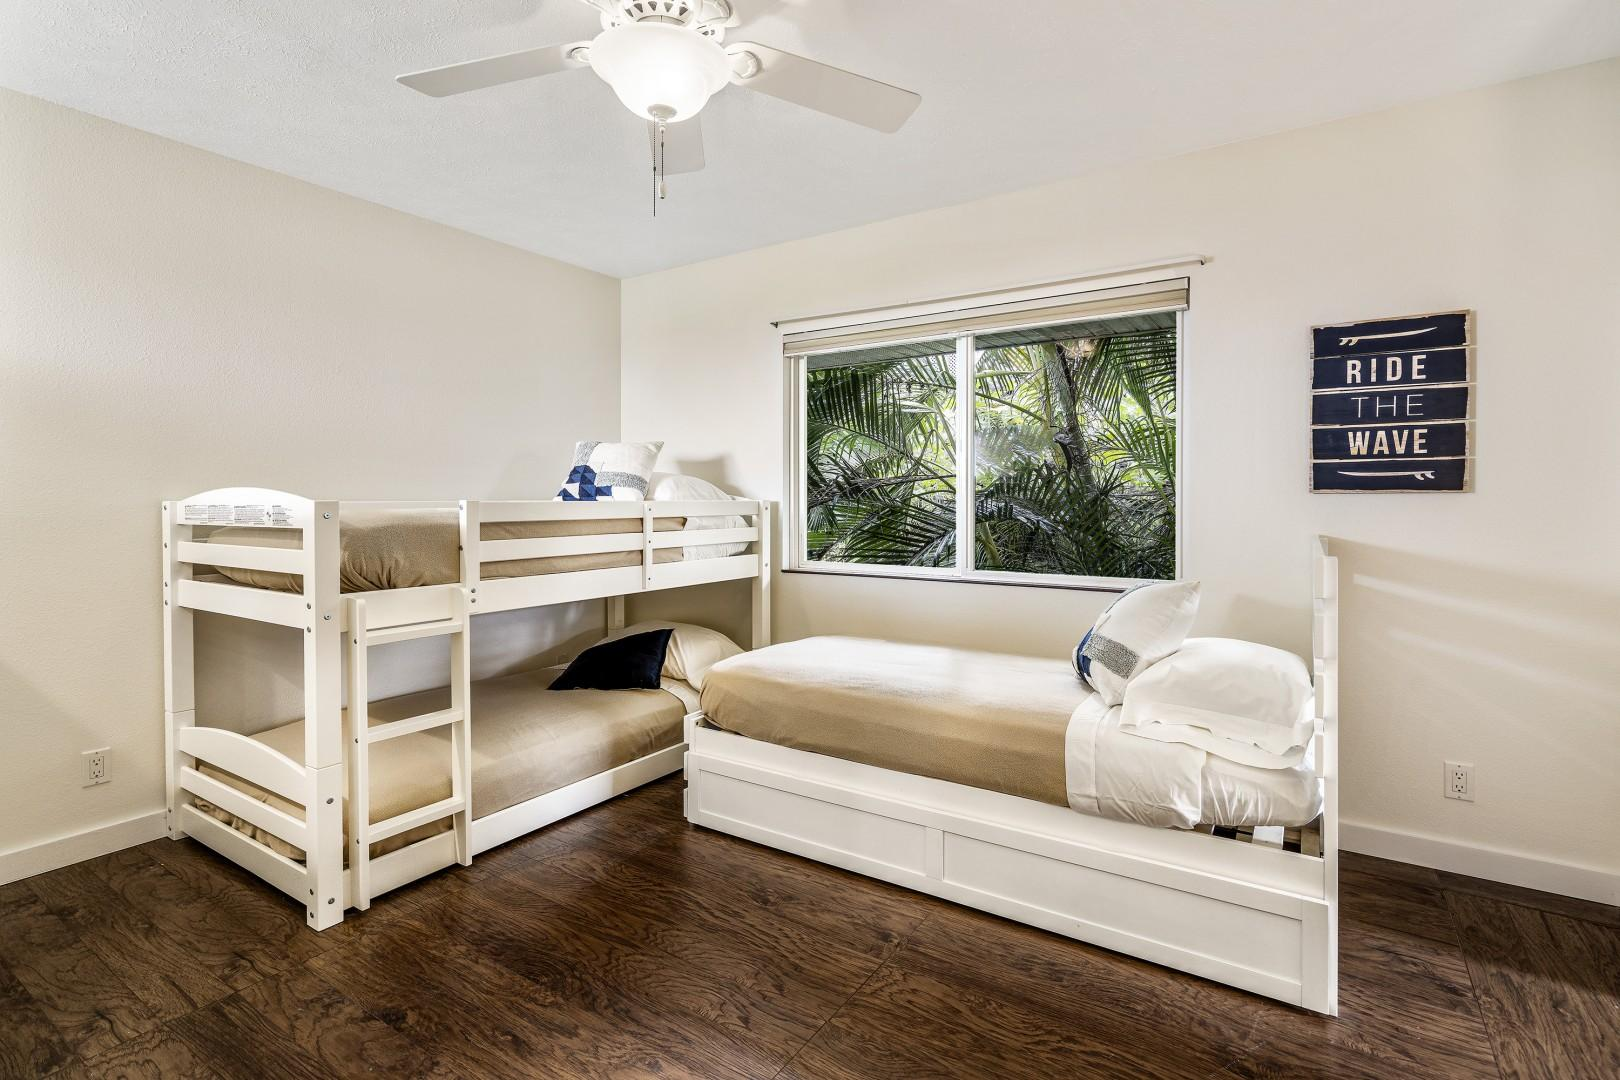 Upstairs kids room featuring 4 twin beds!